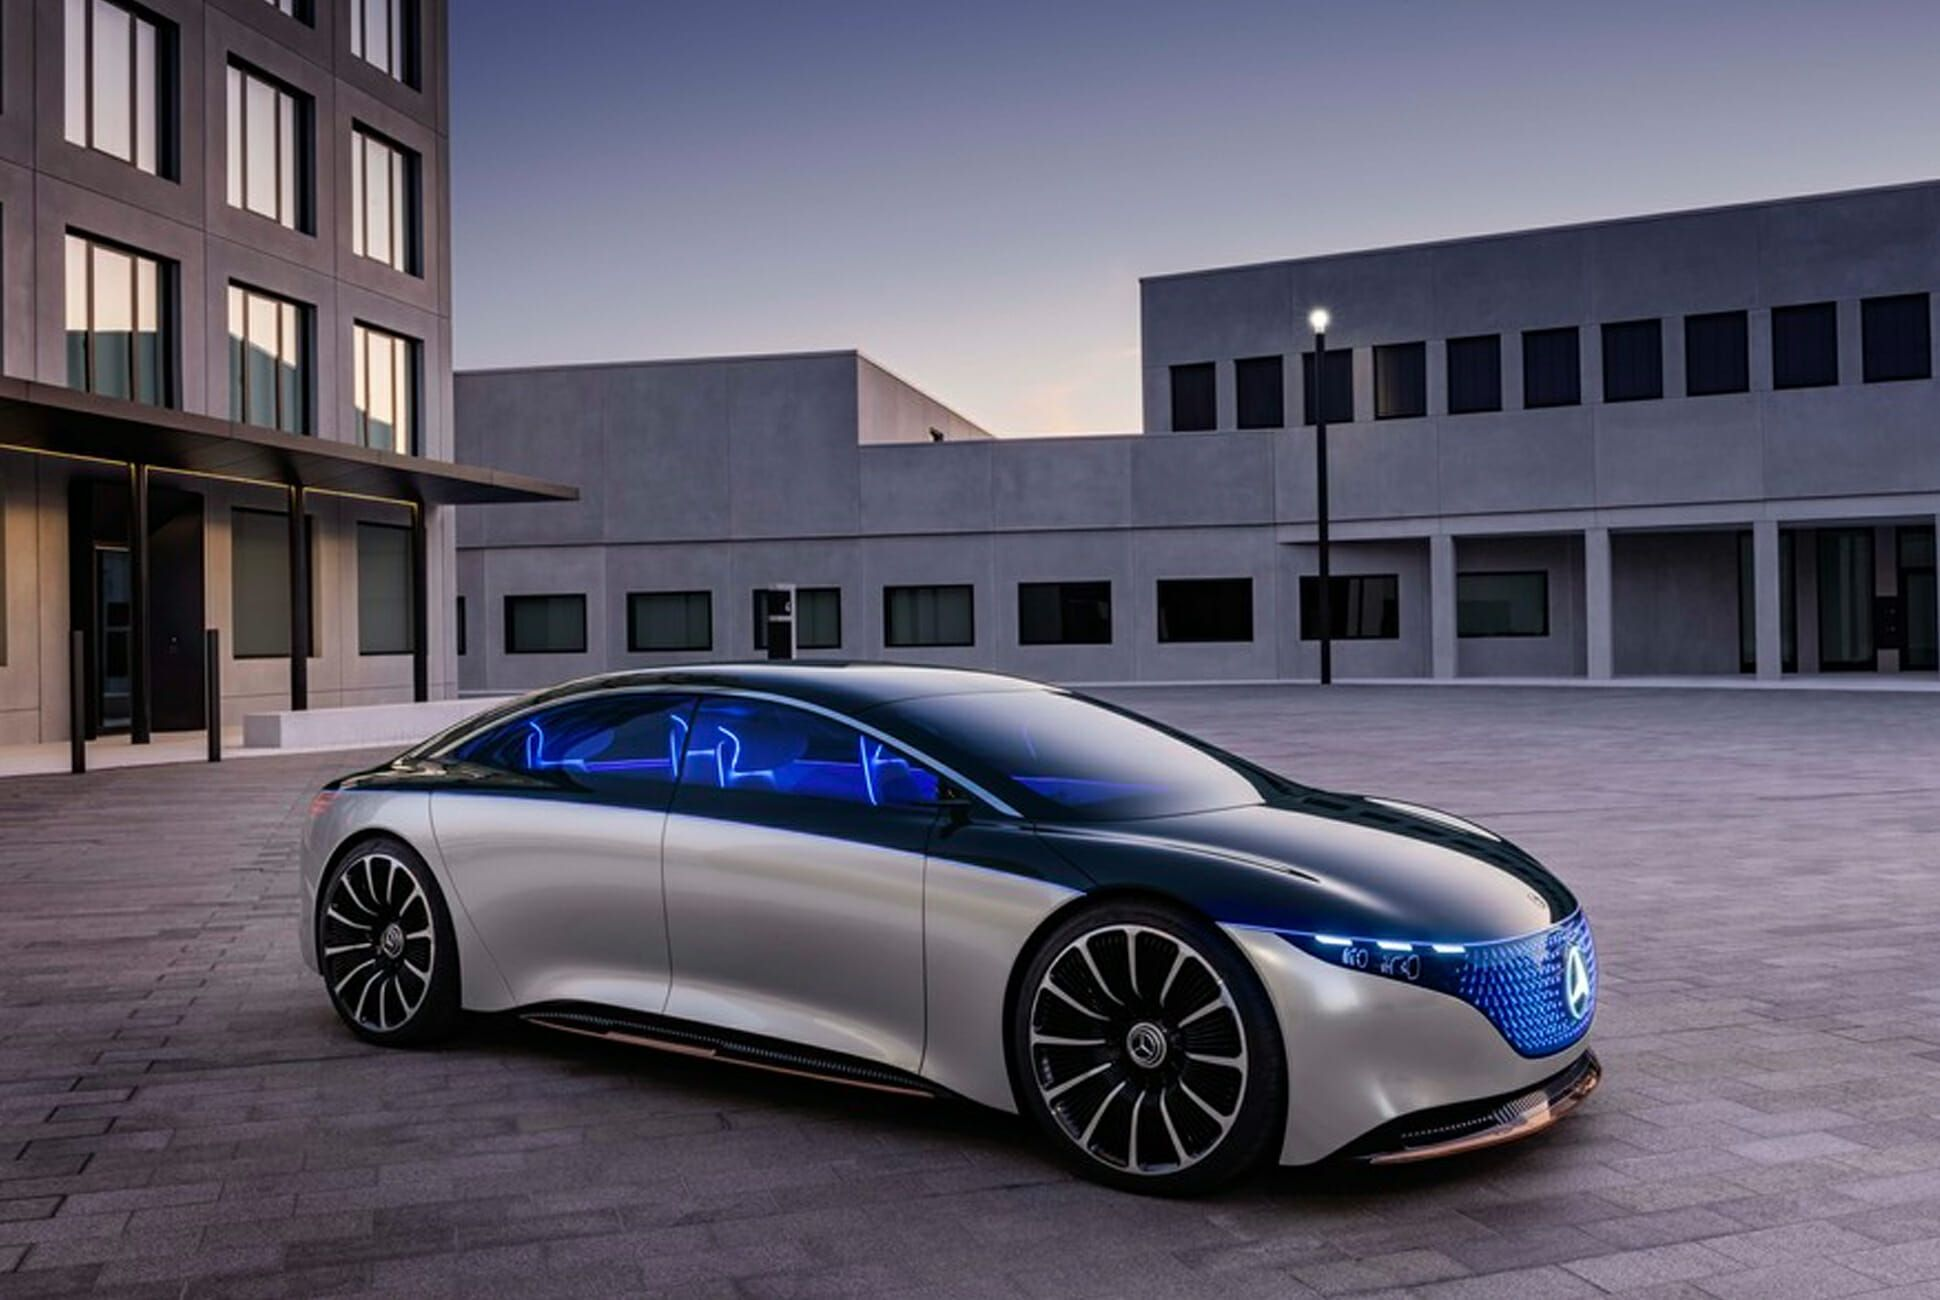 Mercedes-Benz's New EQS Electric Concept Car Is the Future ...